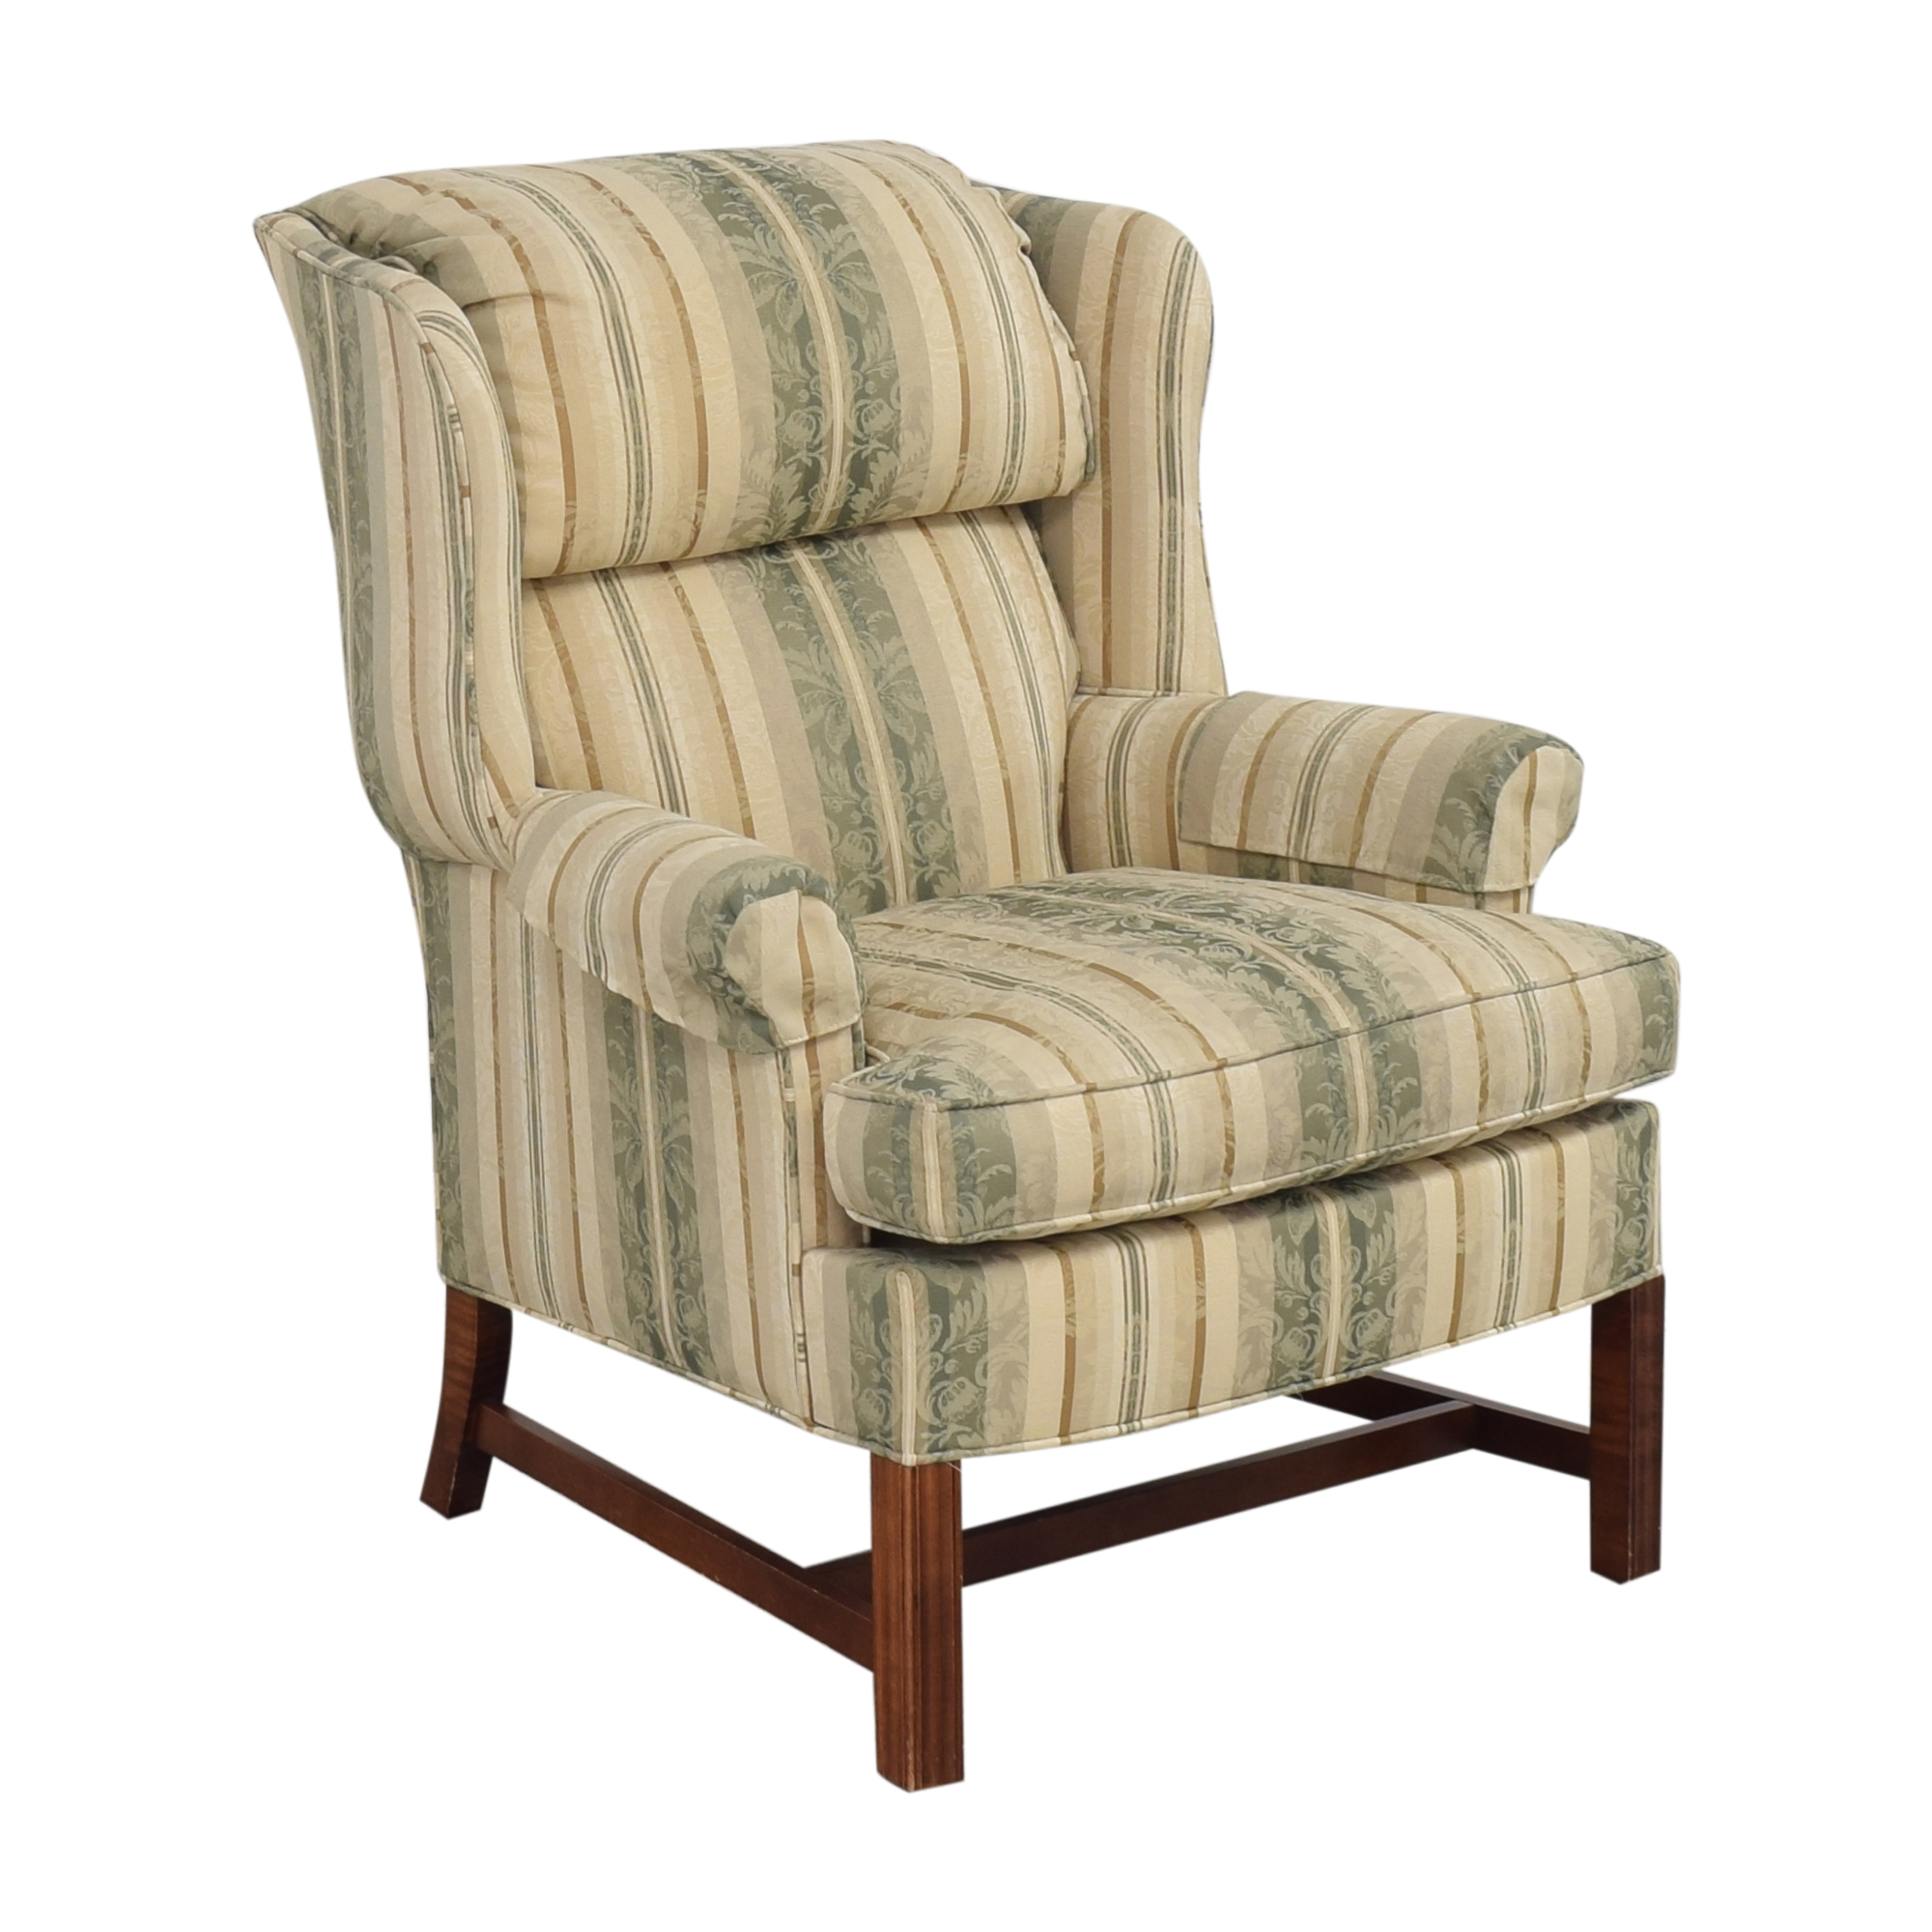 shop Woodmark Wing Back Accent Chair Woodmark